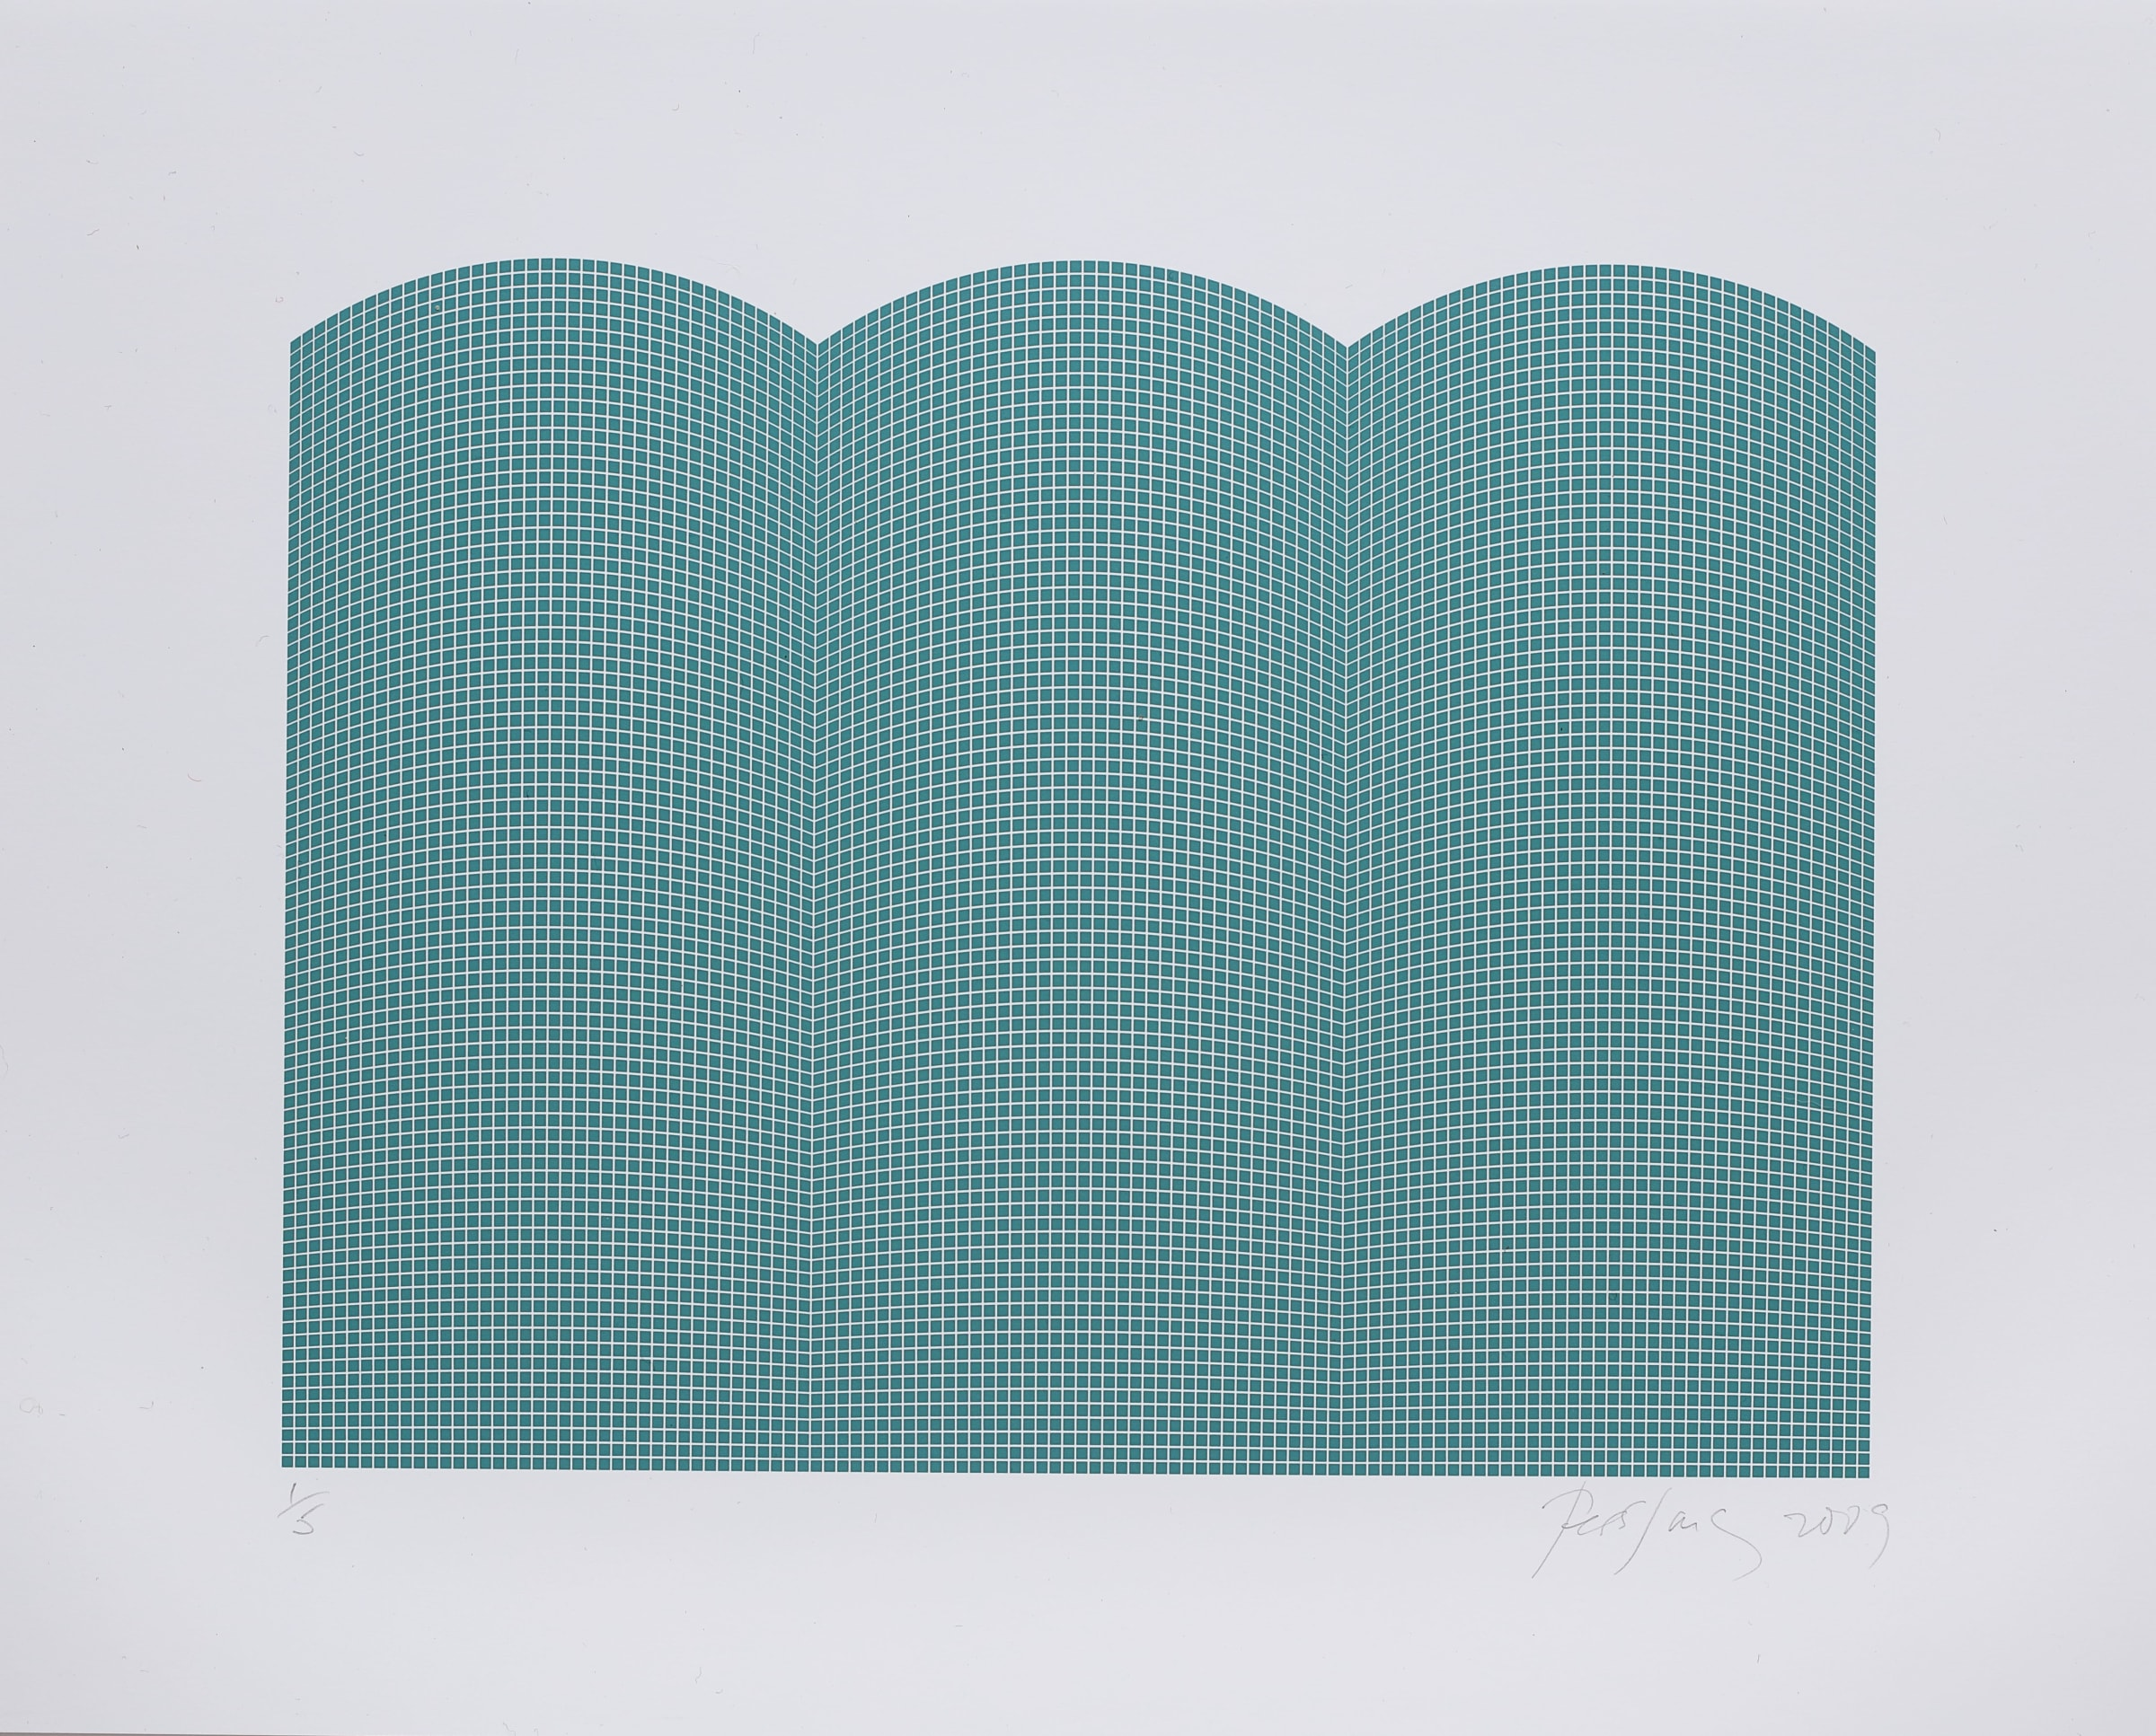 "<span class=""link fancybox-details-link""><a href=""/artists/91-tess-jaray/works/1572-tess-jaray-after-damascus-green-2010/"">View Detail Page</a></span><div class=""artist""><strong>Tess Jaray</strong></div> <div class=""title""><em>After Damascus (Green)</em>, 2010</div> <div class=""medium"">Inkjet on paper</div> <div class=""dimensions"">30 x 37cm</div>"